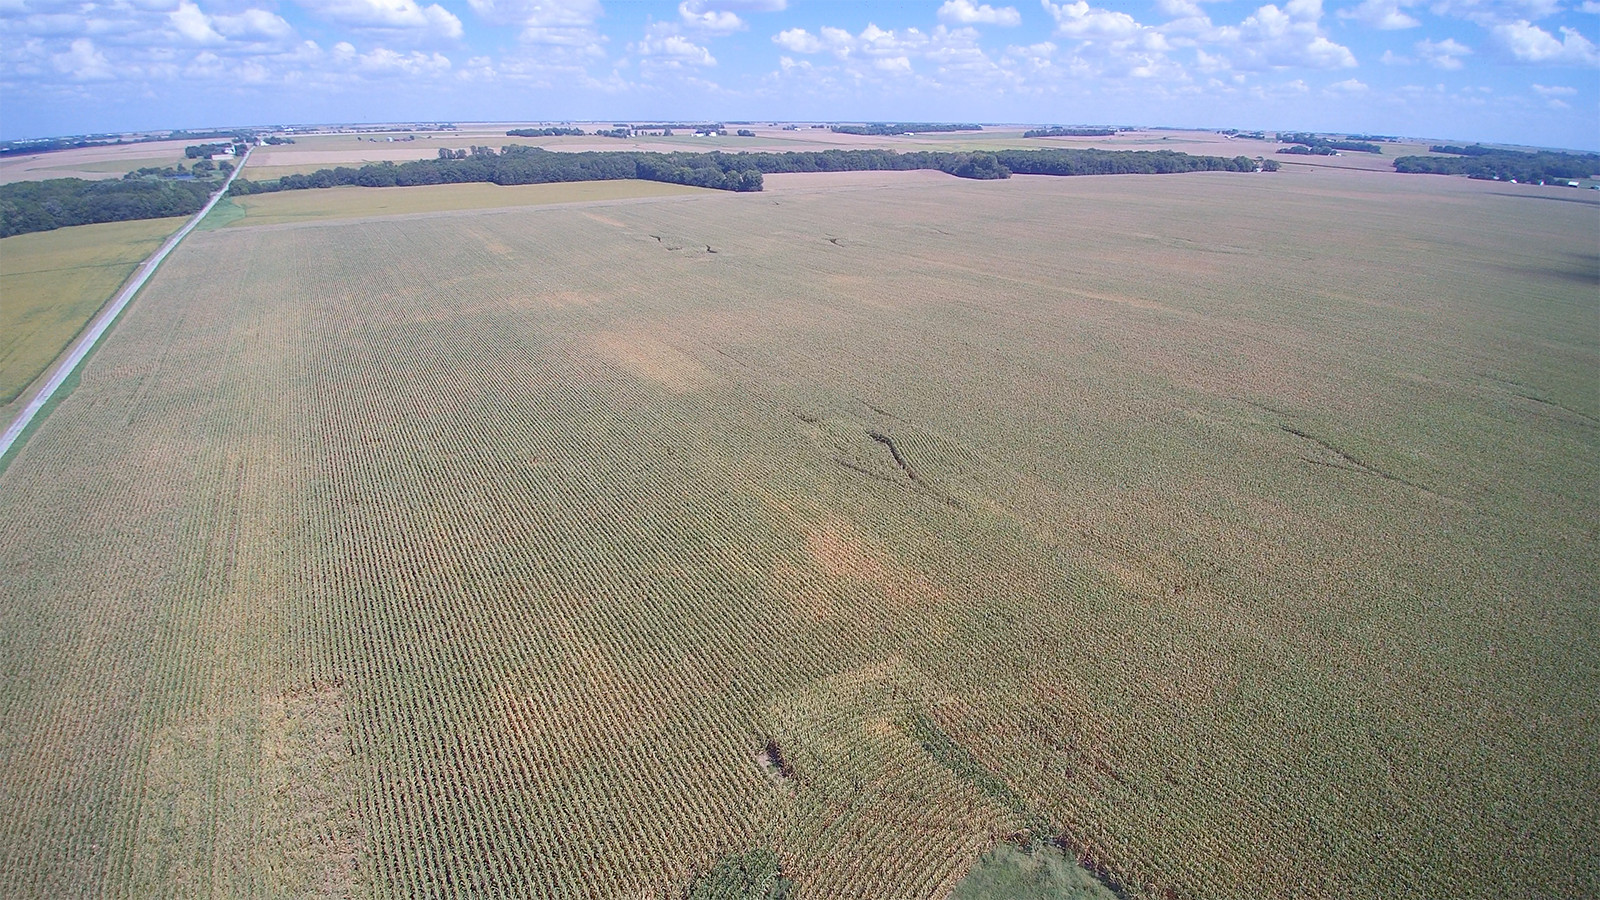 Drone 2 - MWA Auctions & Real Estate | Macon Co Farmland Auction 240 Ac - Dec 12 2019